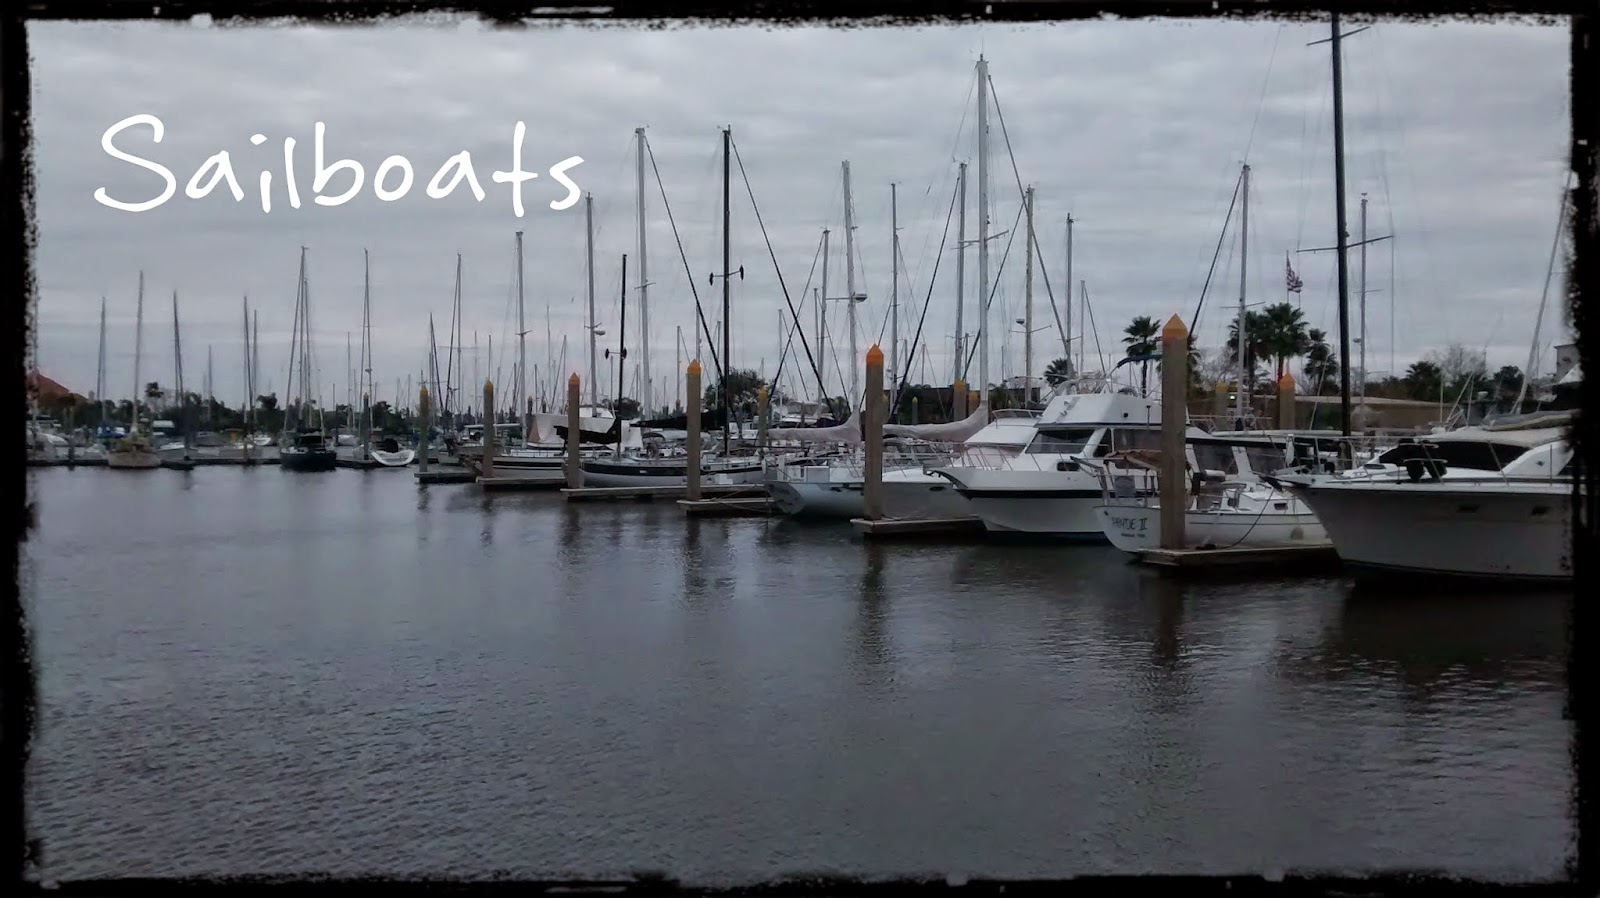 Sailboats in Kemah TX